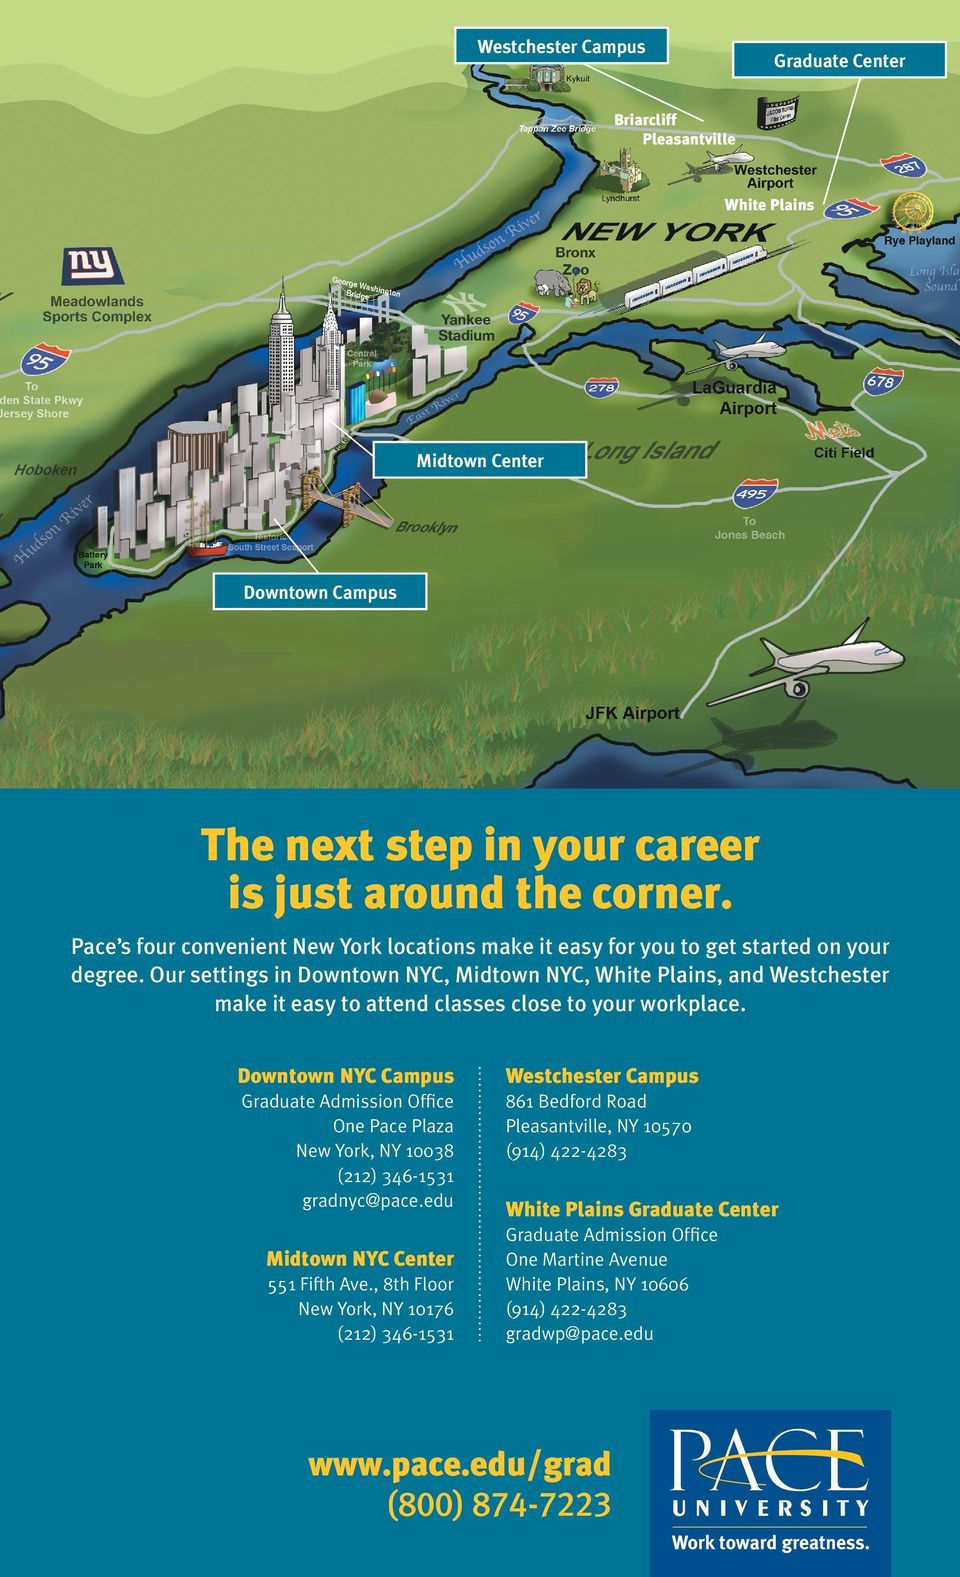 Pace University Pleasantville Campus Map.Take Your Career To The Next Level Pace University Graduate